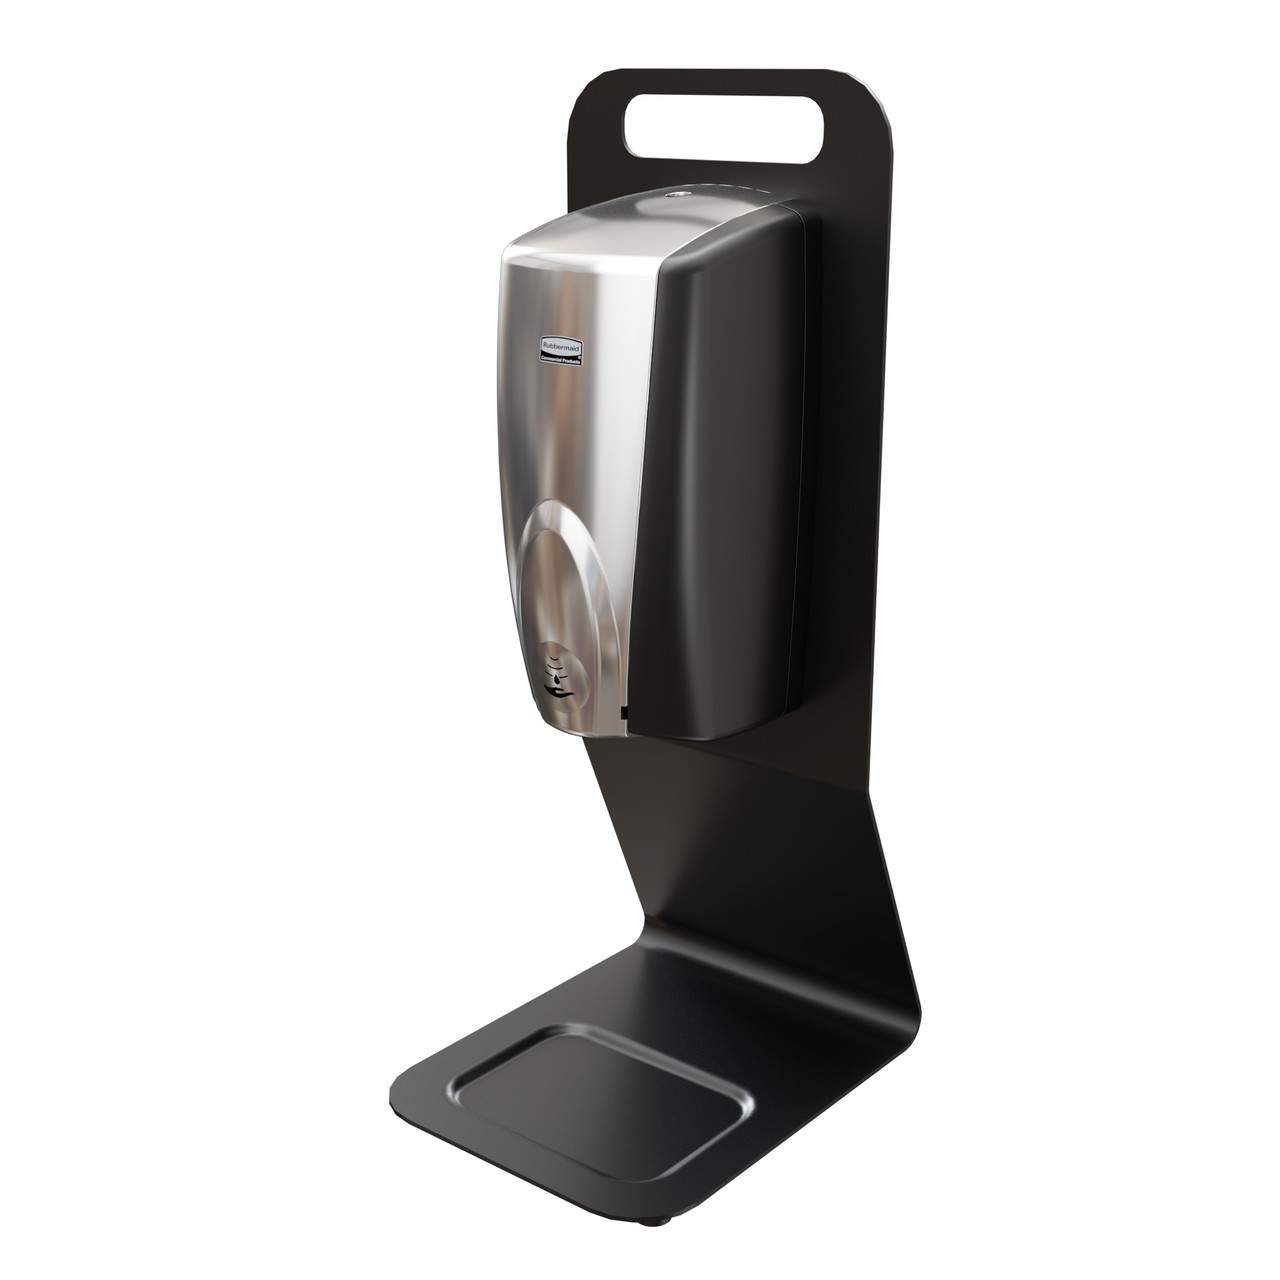 2143544 - Rubbermaid AutoFoam Countertop Station - Black - Integrated drip tray helps catch drips or spills and keeps surfaces clean